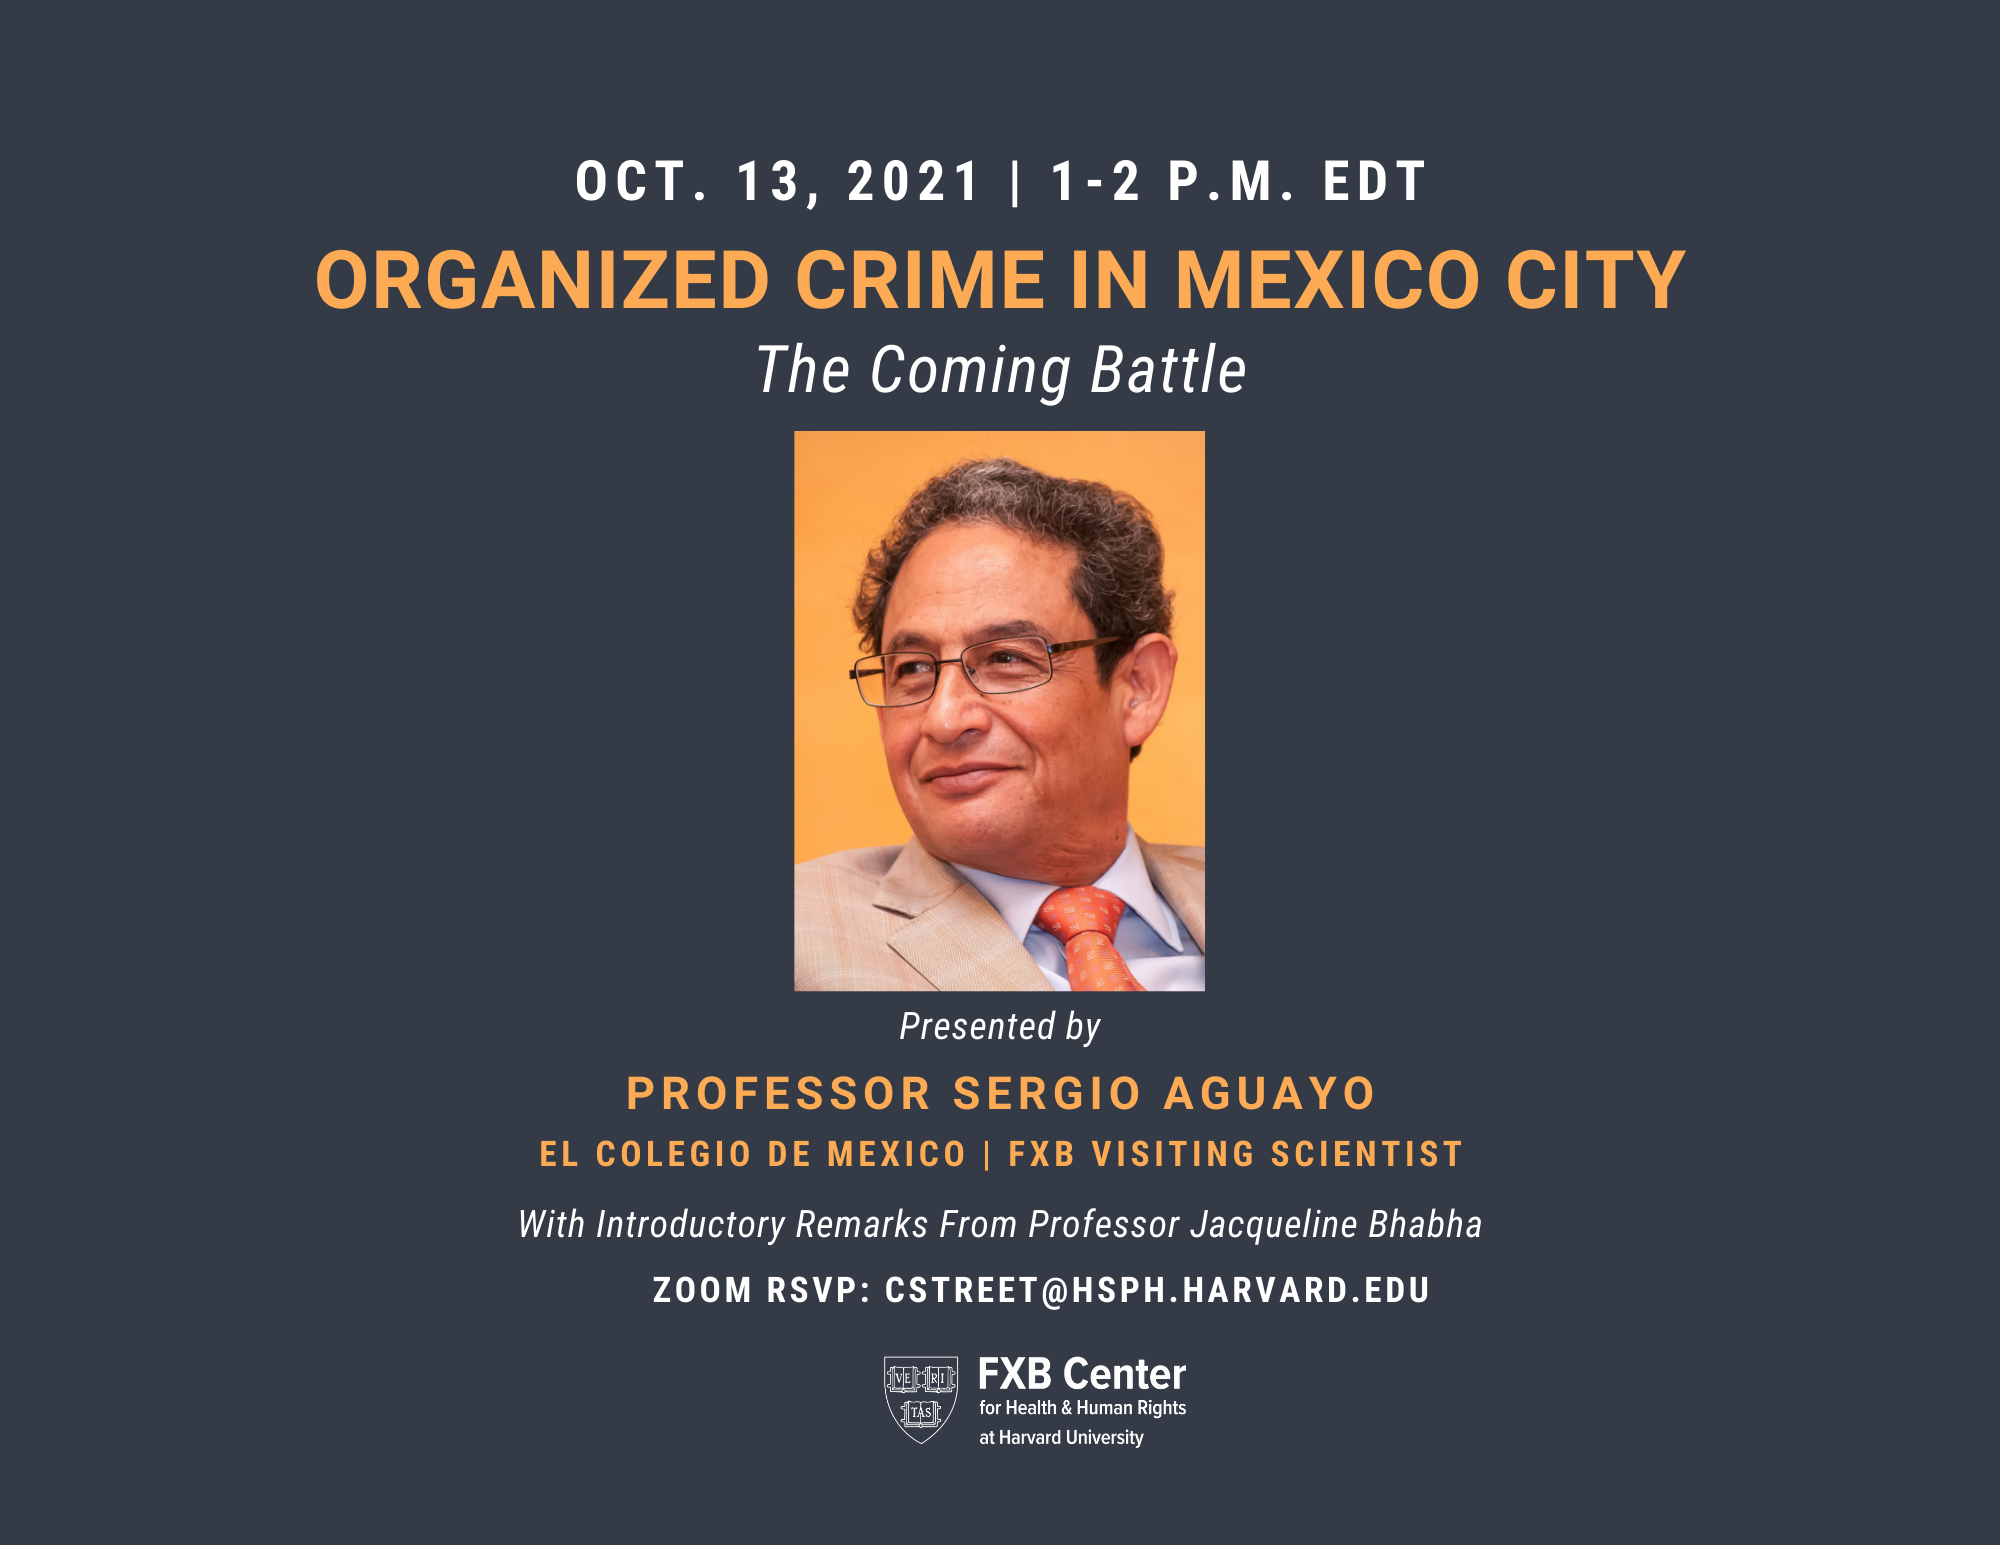 Flyer for 10-13-21 FXB Center event featuring Sergio Aguayo